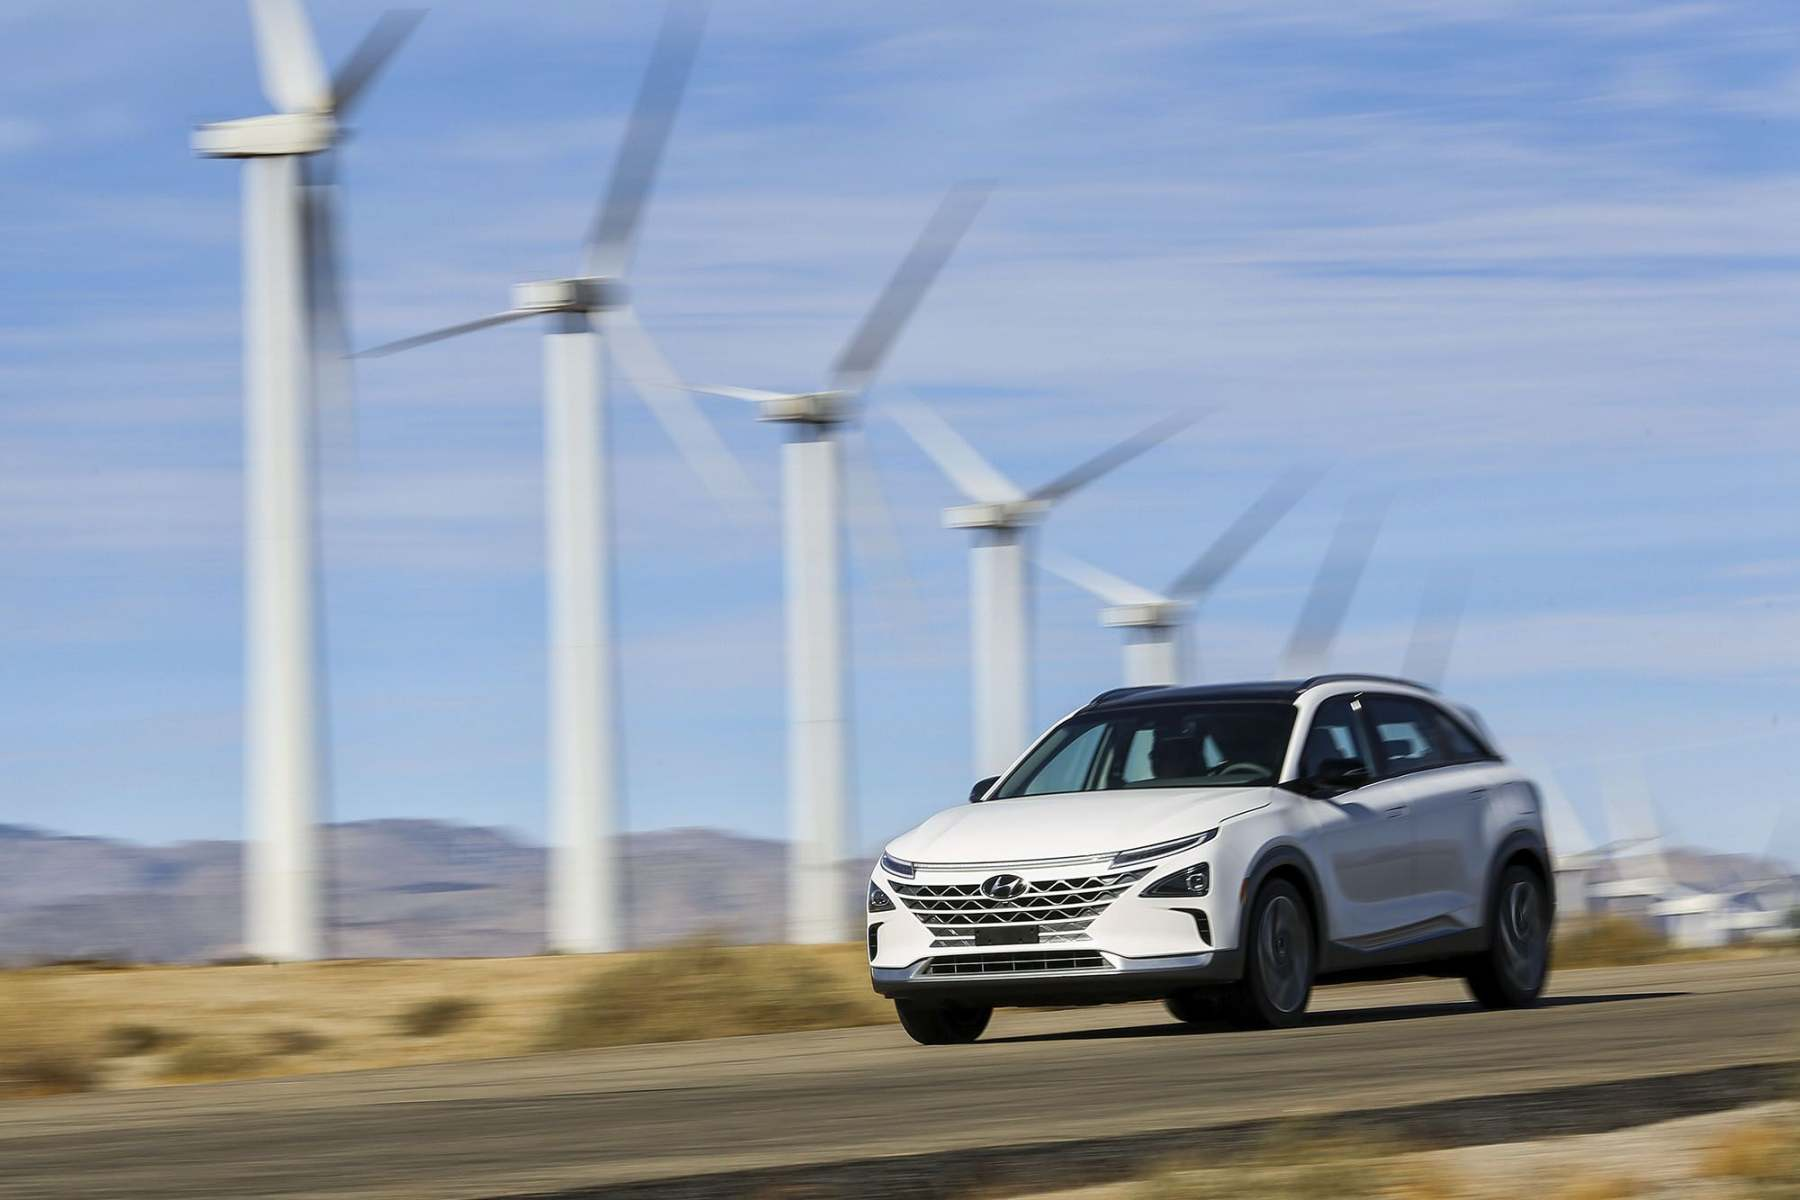 Hyundai Nexo Wallpapers YL Computing 1800x1200